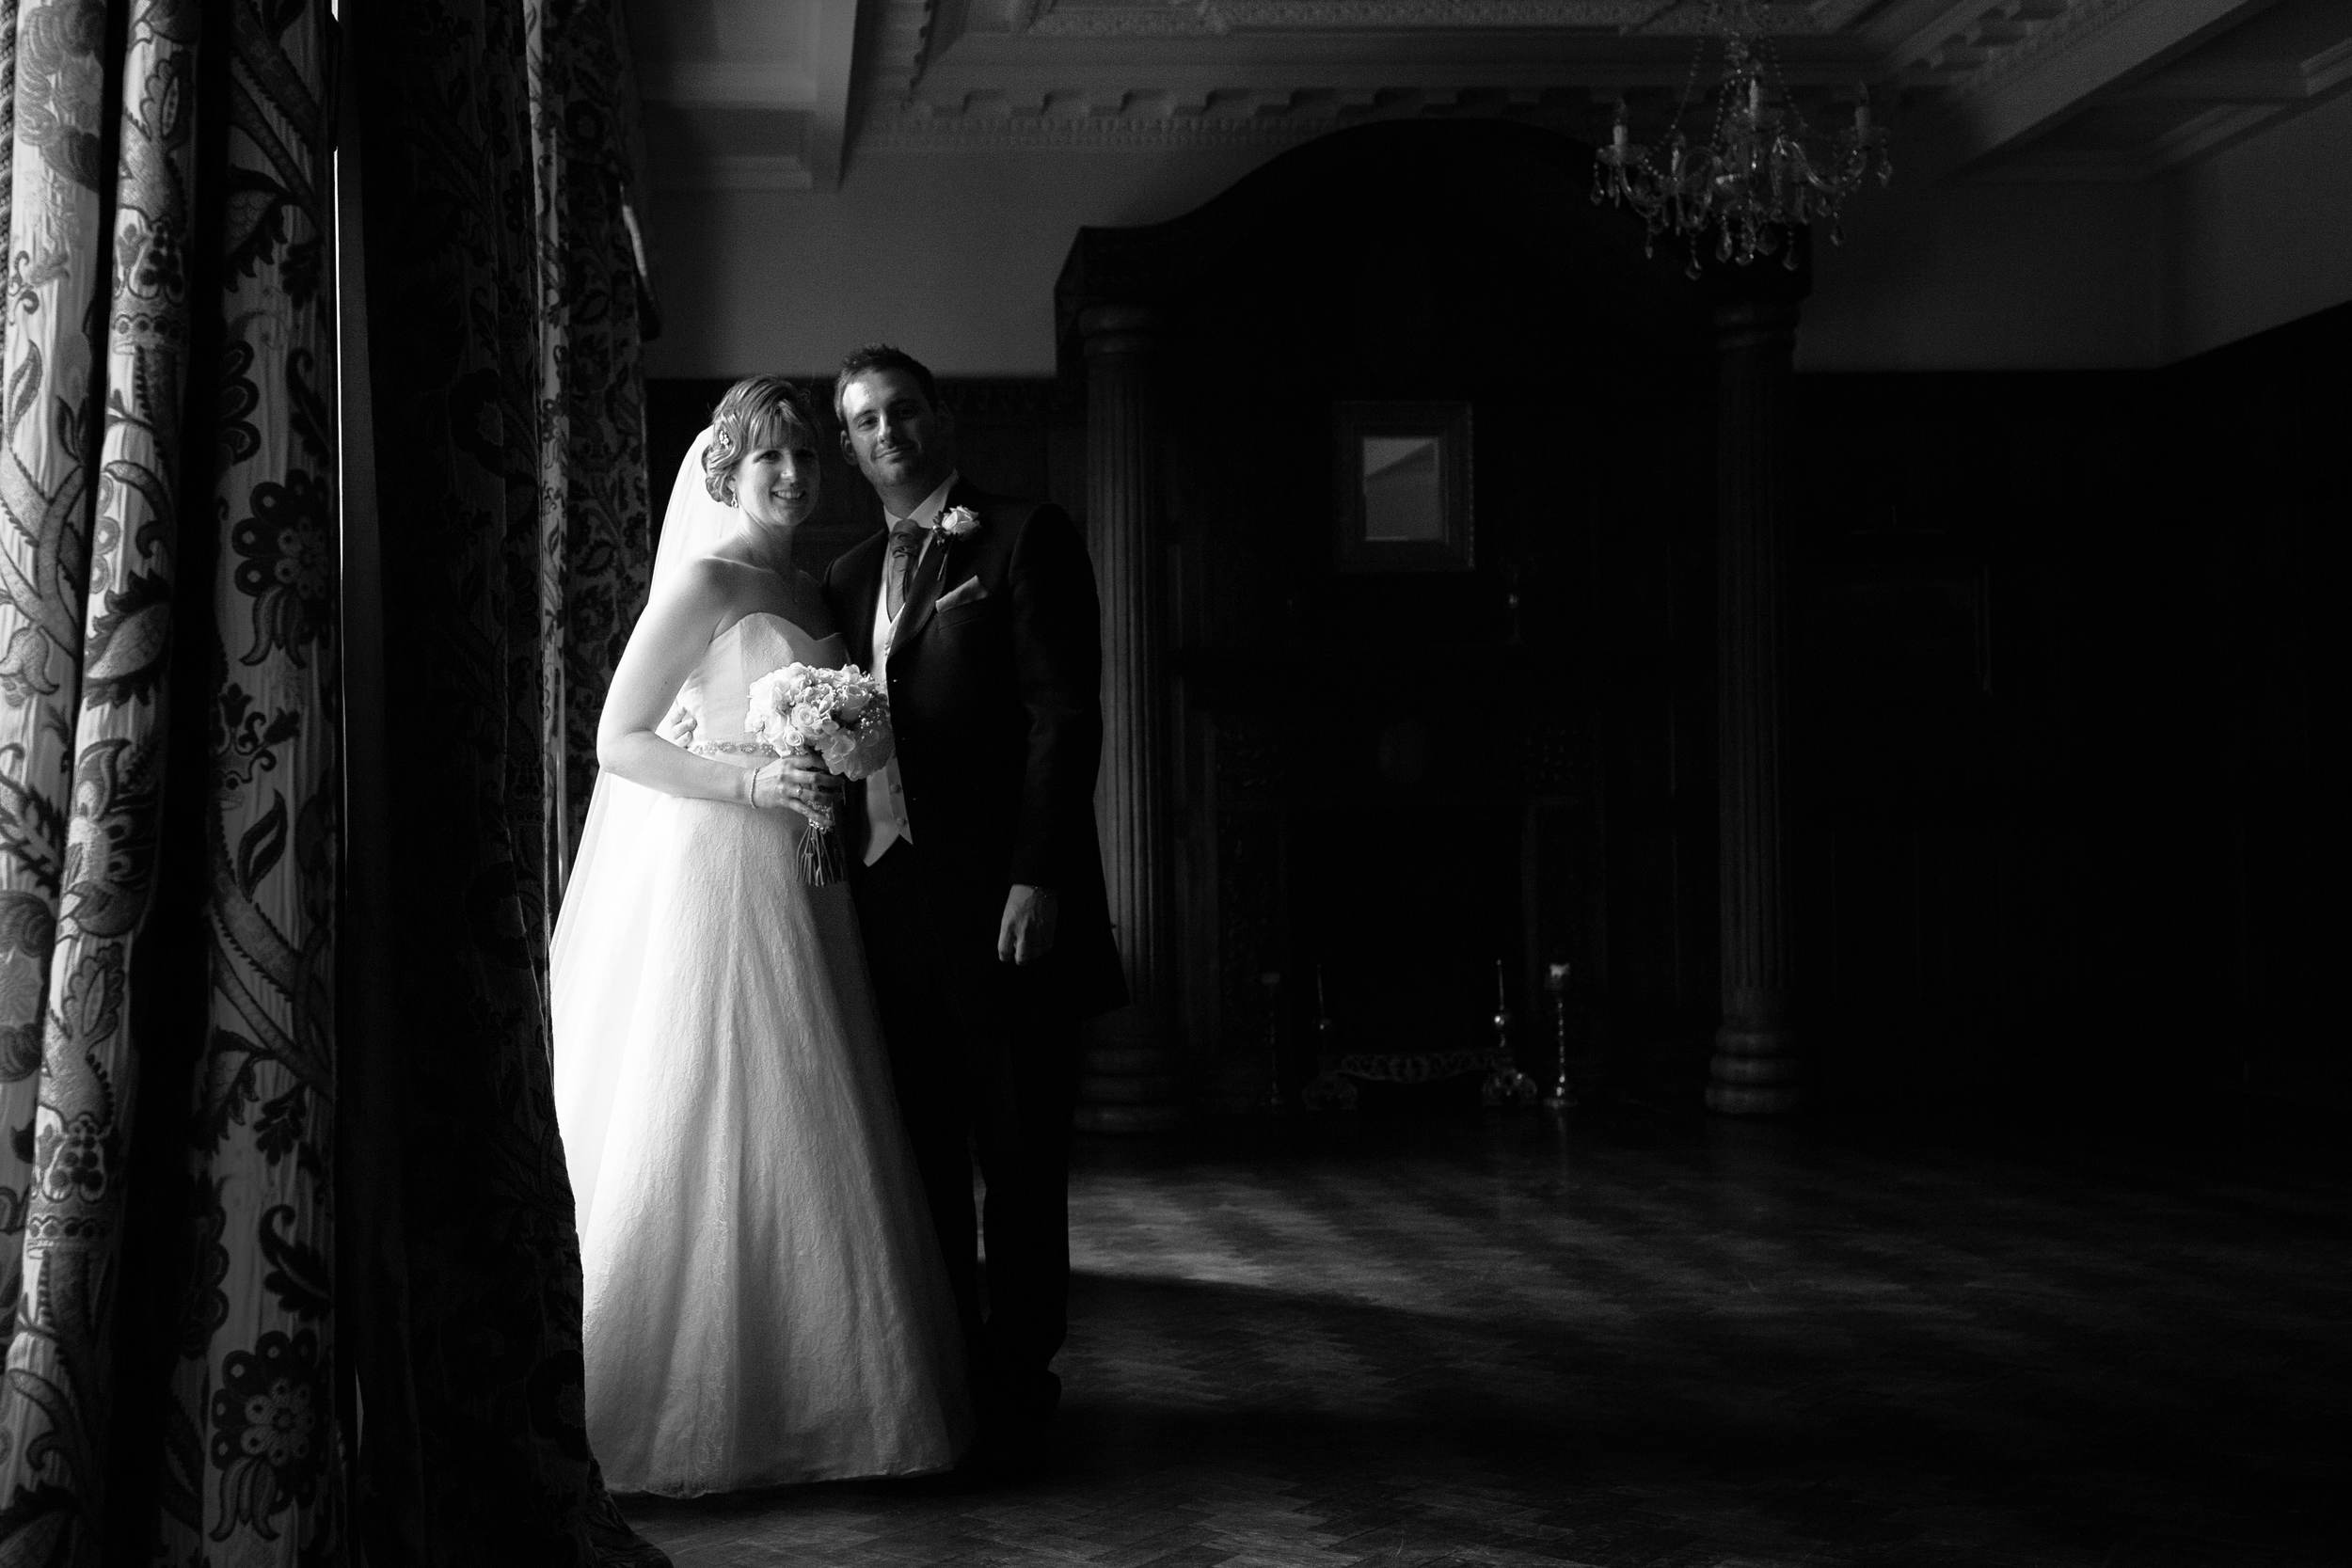 The bride and groom lit by window light at Ellingham Hall, Northumberland in this moody black and white photograph